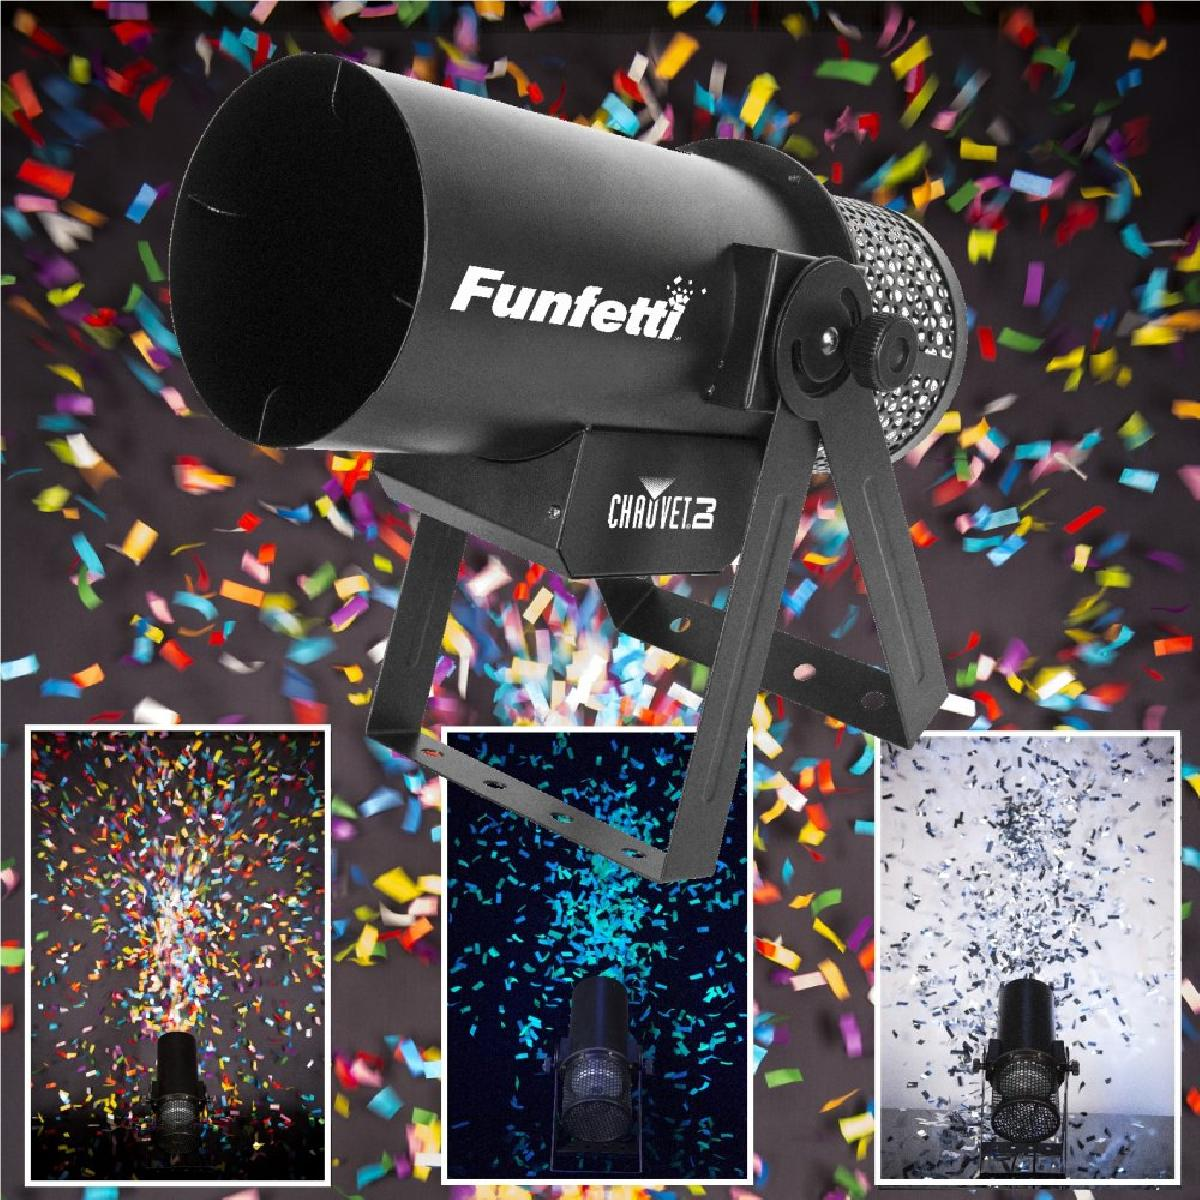 Confetti Cannons available to add to your evening